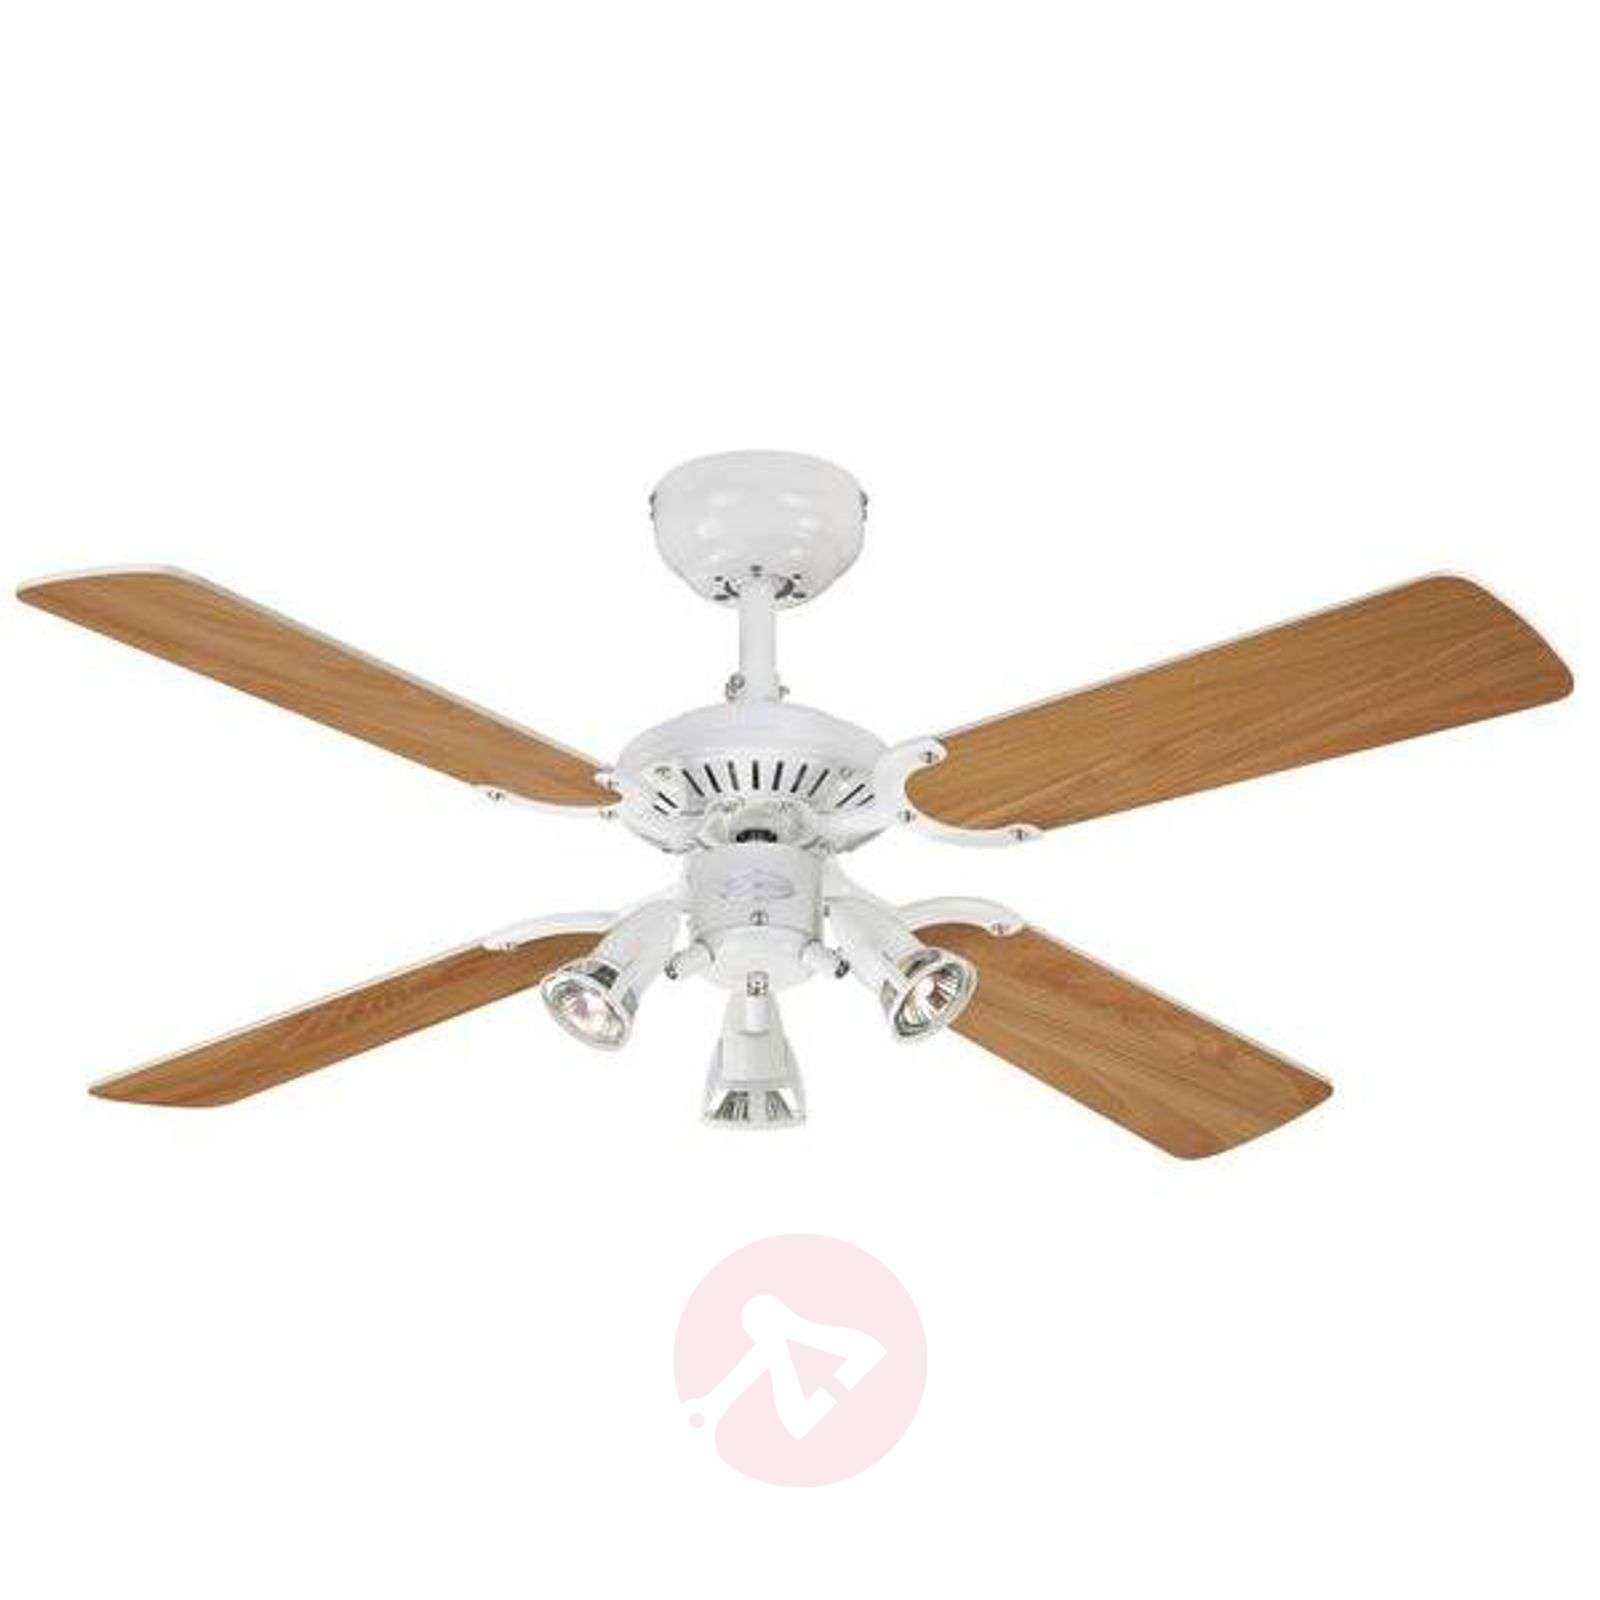 Ceiling fan princess euro with 3 bulbs 9602279 32g ceiling fan princess euro with 3 bulbs 9602279 01 aloadofball Gallery